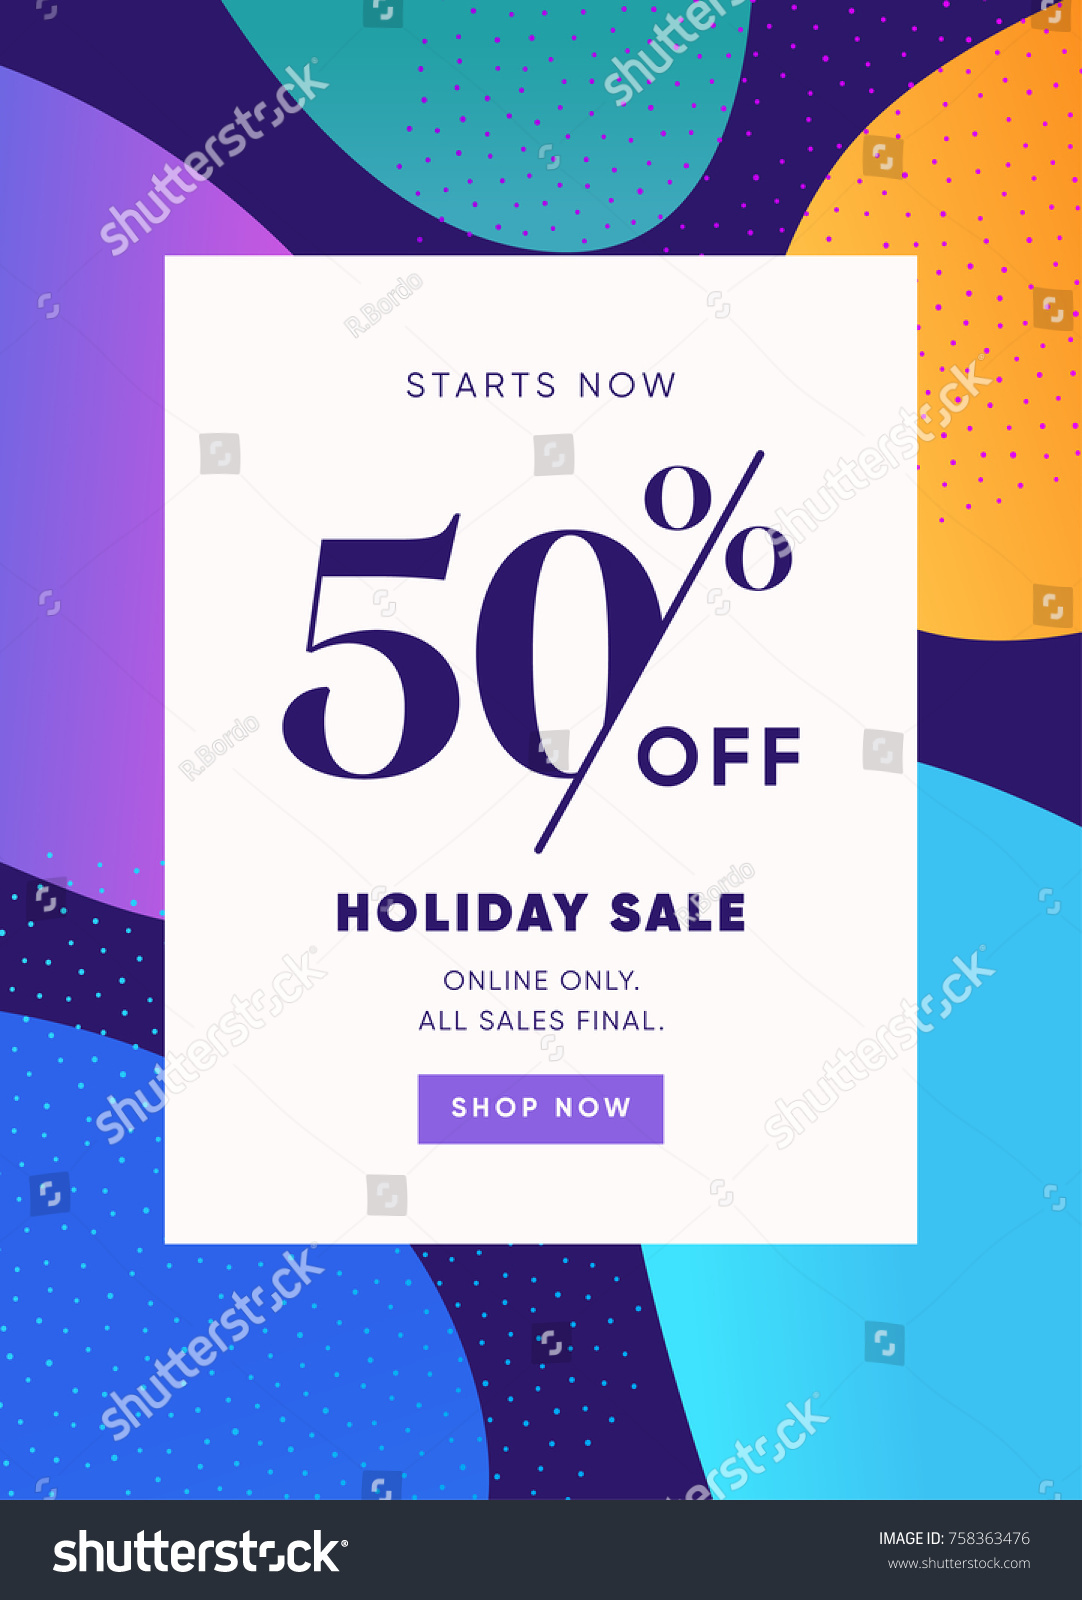 Holiday Sale Banner 50 OFF Special Offer Ad Discount Promotion Vector